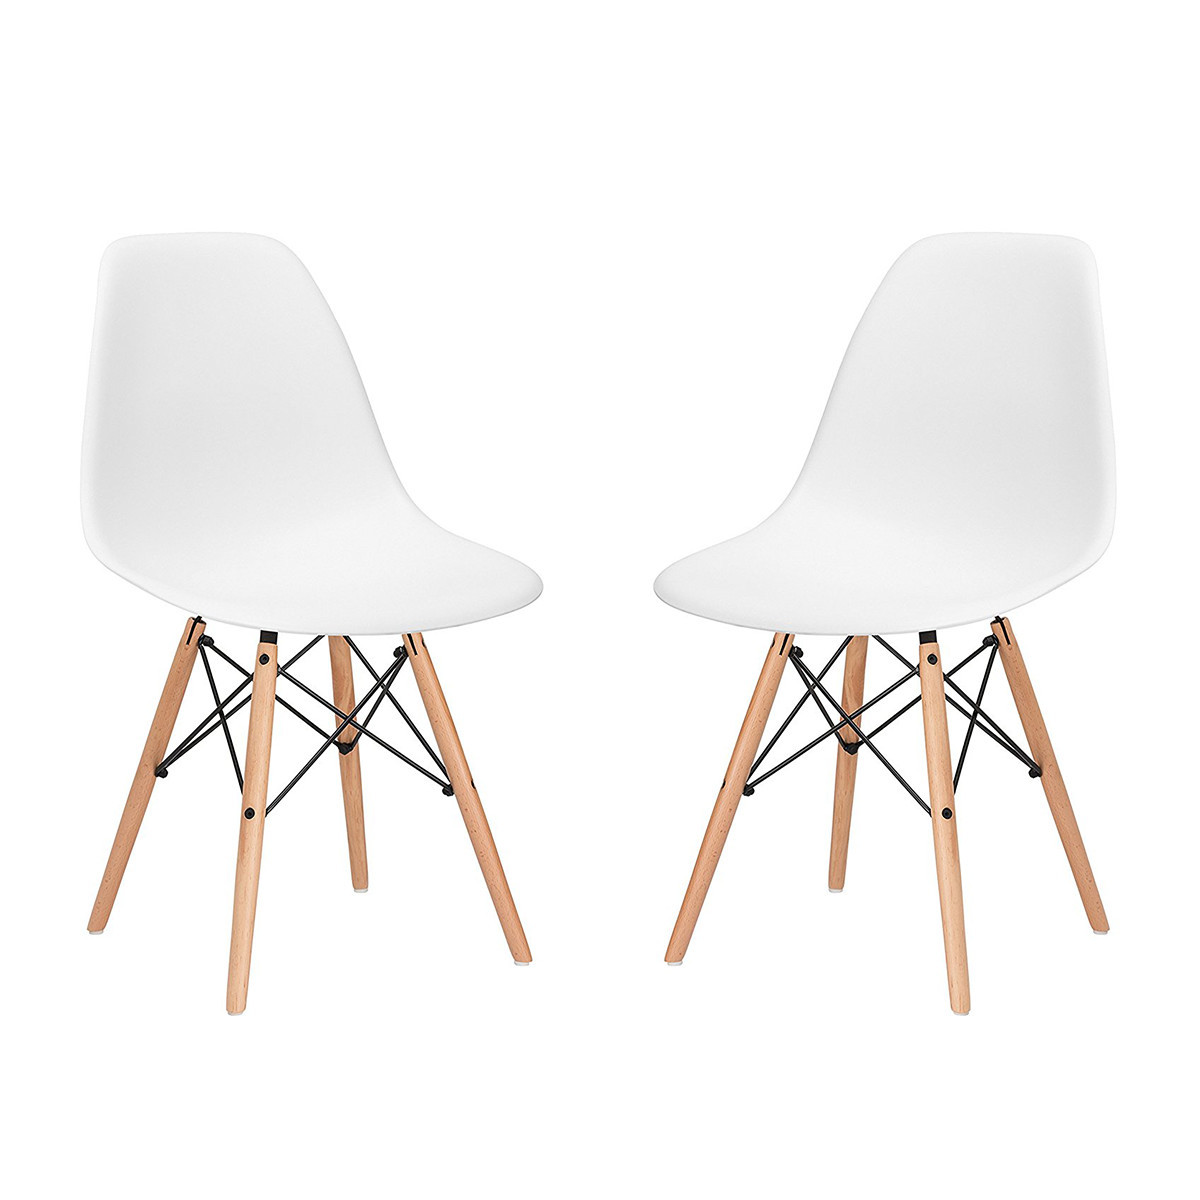 Poly and Bark Eames Style Molded Plastic Dowel-Leg Side Chairs with Natural Legs in White photo